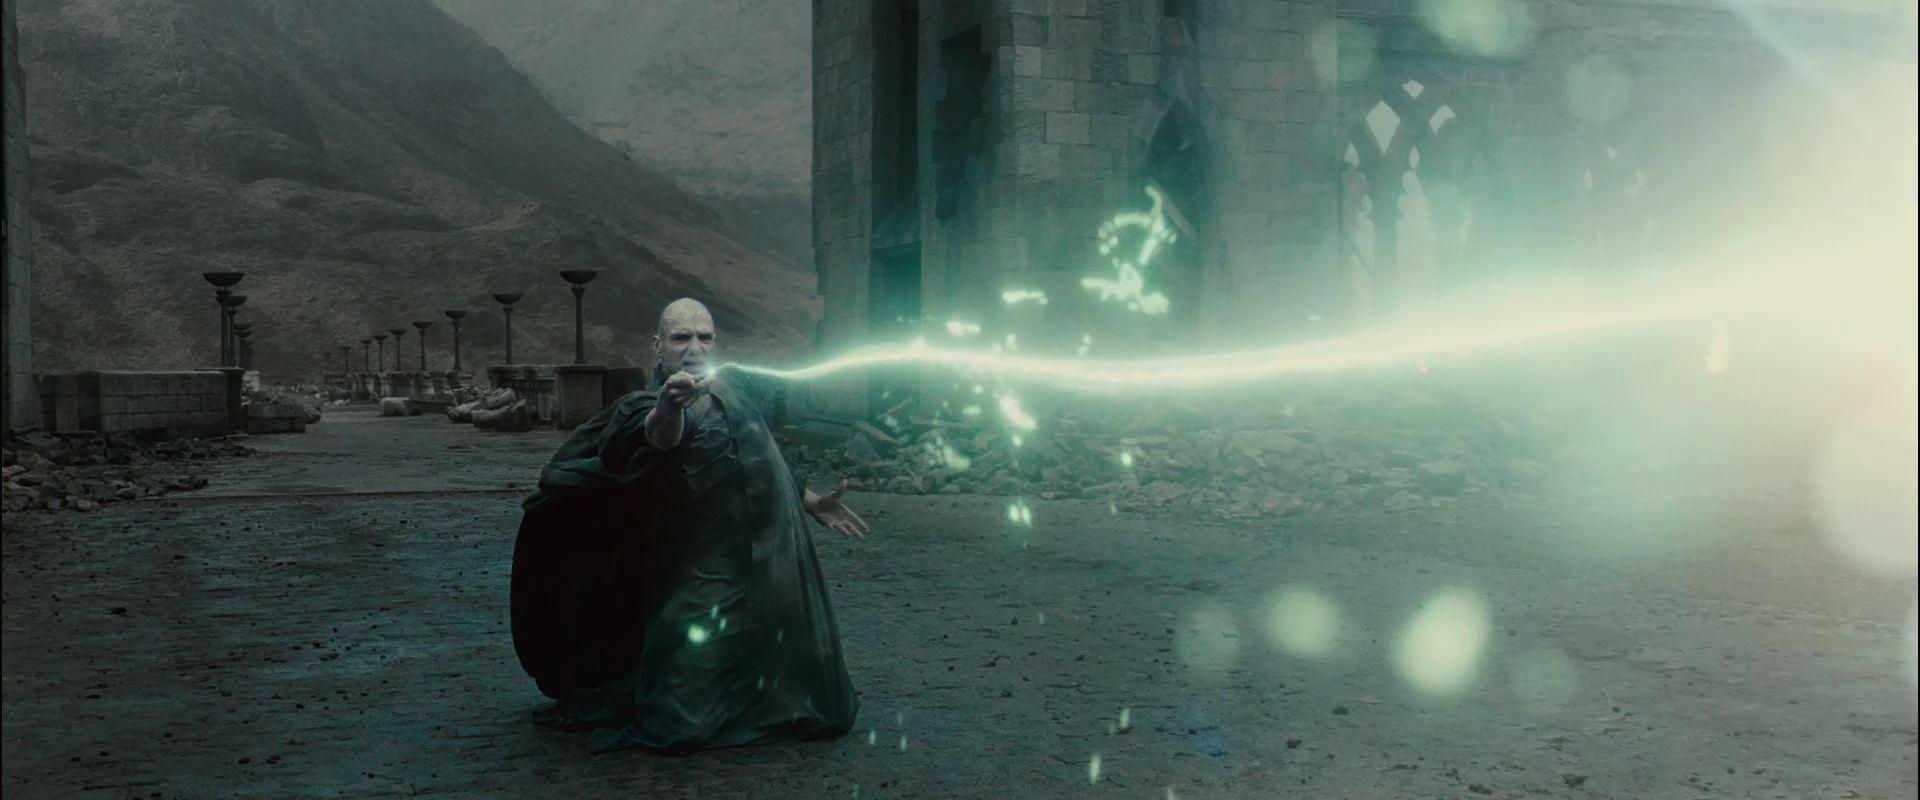 Top Wallpaper Harry Potter Dual Screen - Voldemort-Duel-Harry-Potter-and-the-Deathly-Hallows-Wallpaper  Image_426047.jpg